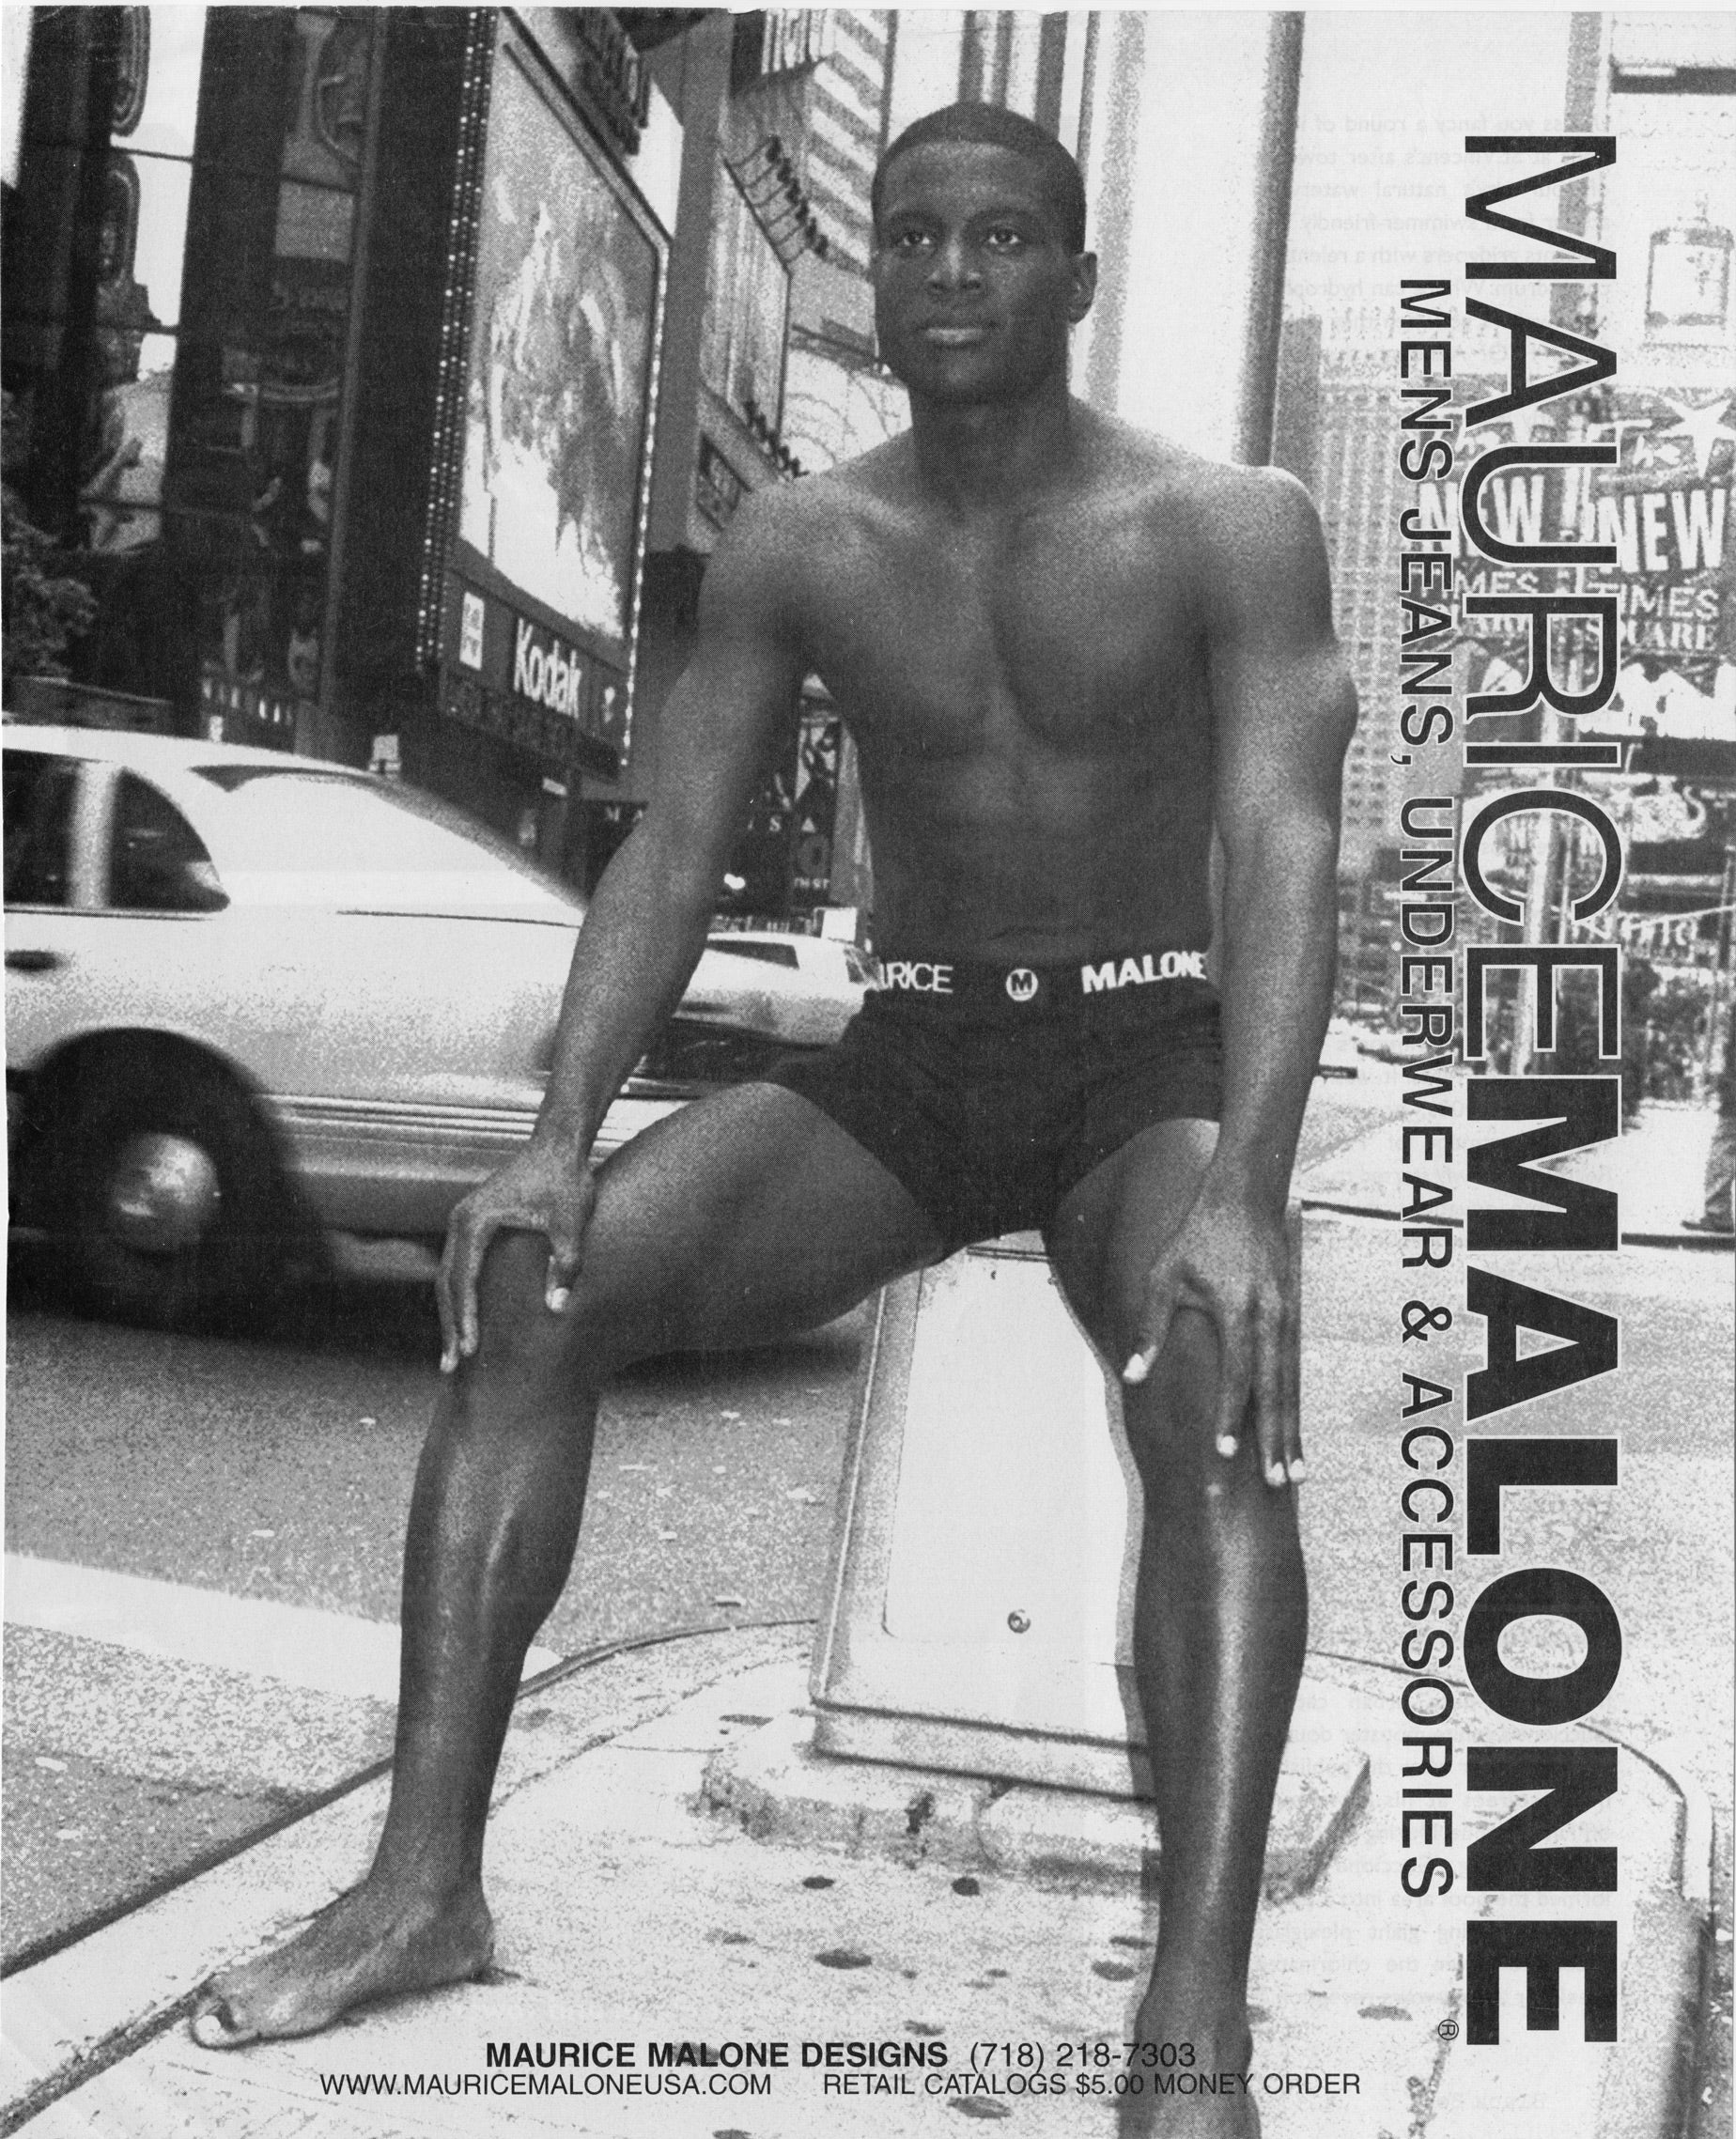 Maurice Malone brand Spring 1998 mens underwear advertisement shot in Times Square, New York 1997